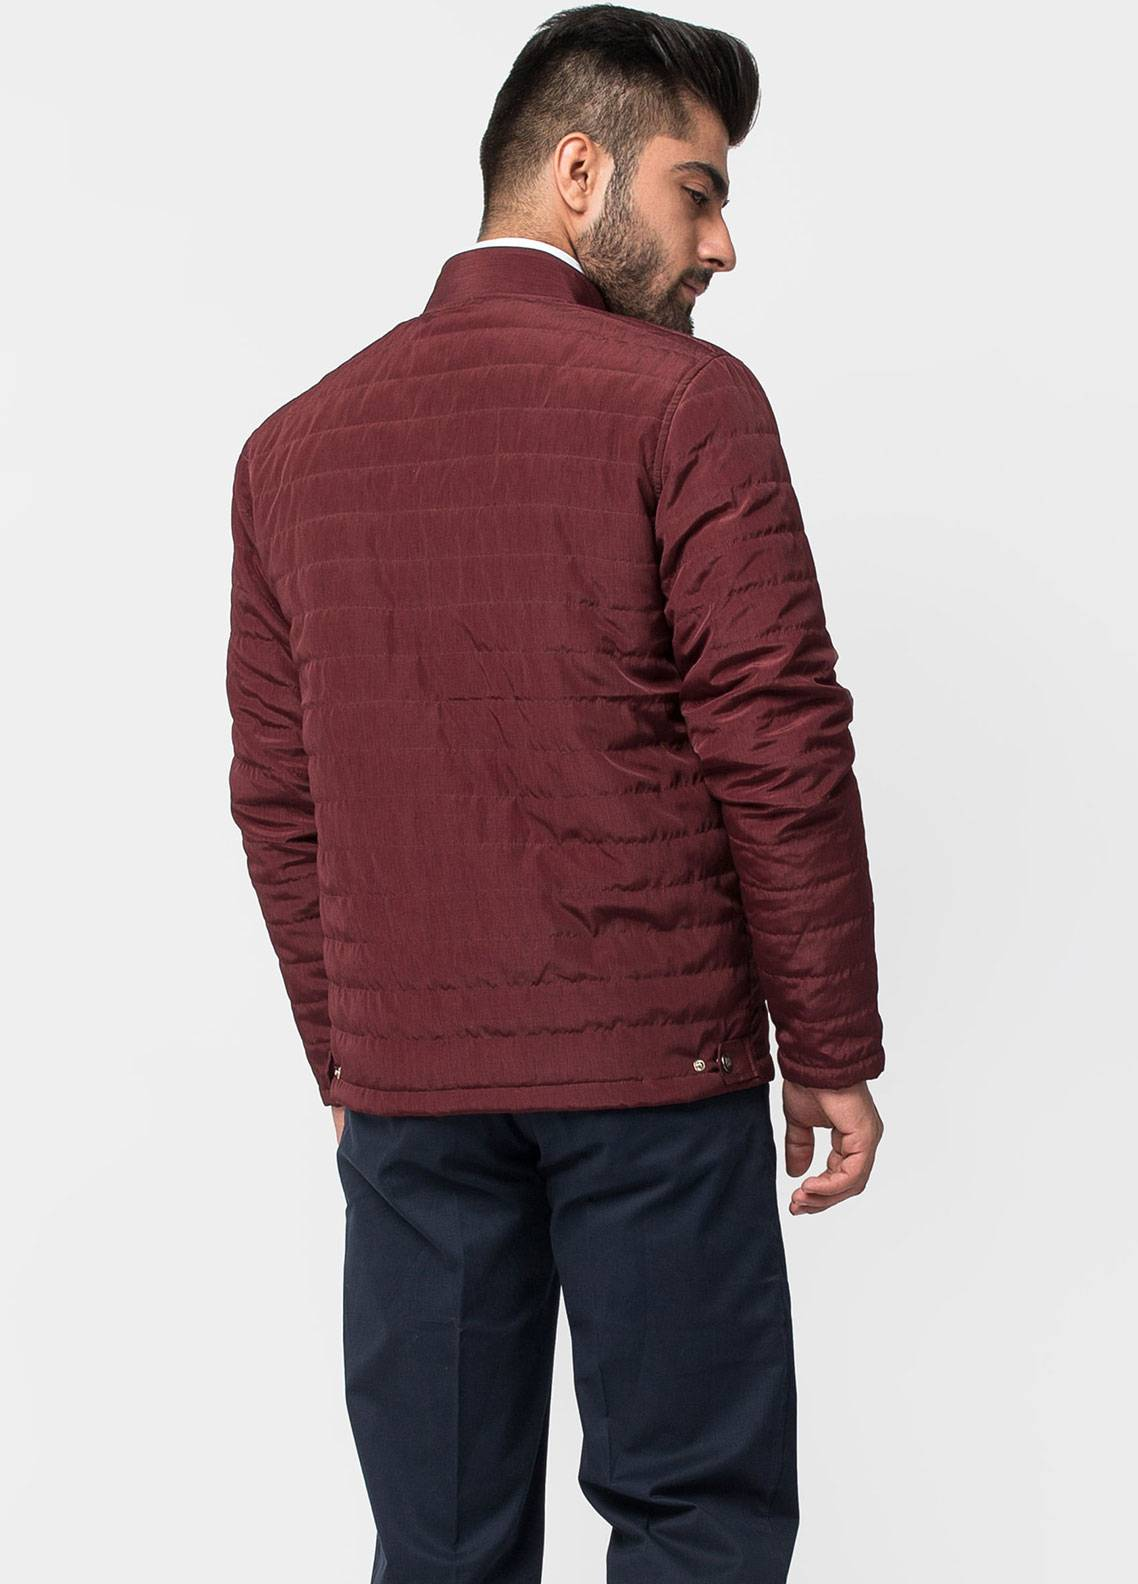 Brumano Polyester Full Sleeves Men Jackets - Burgundy BRM-11-1008